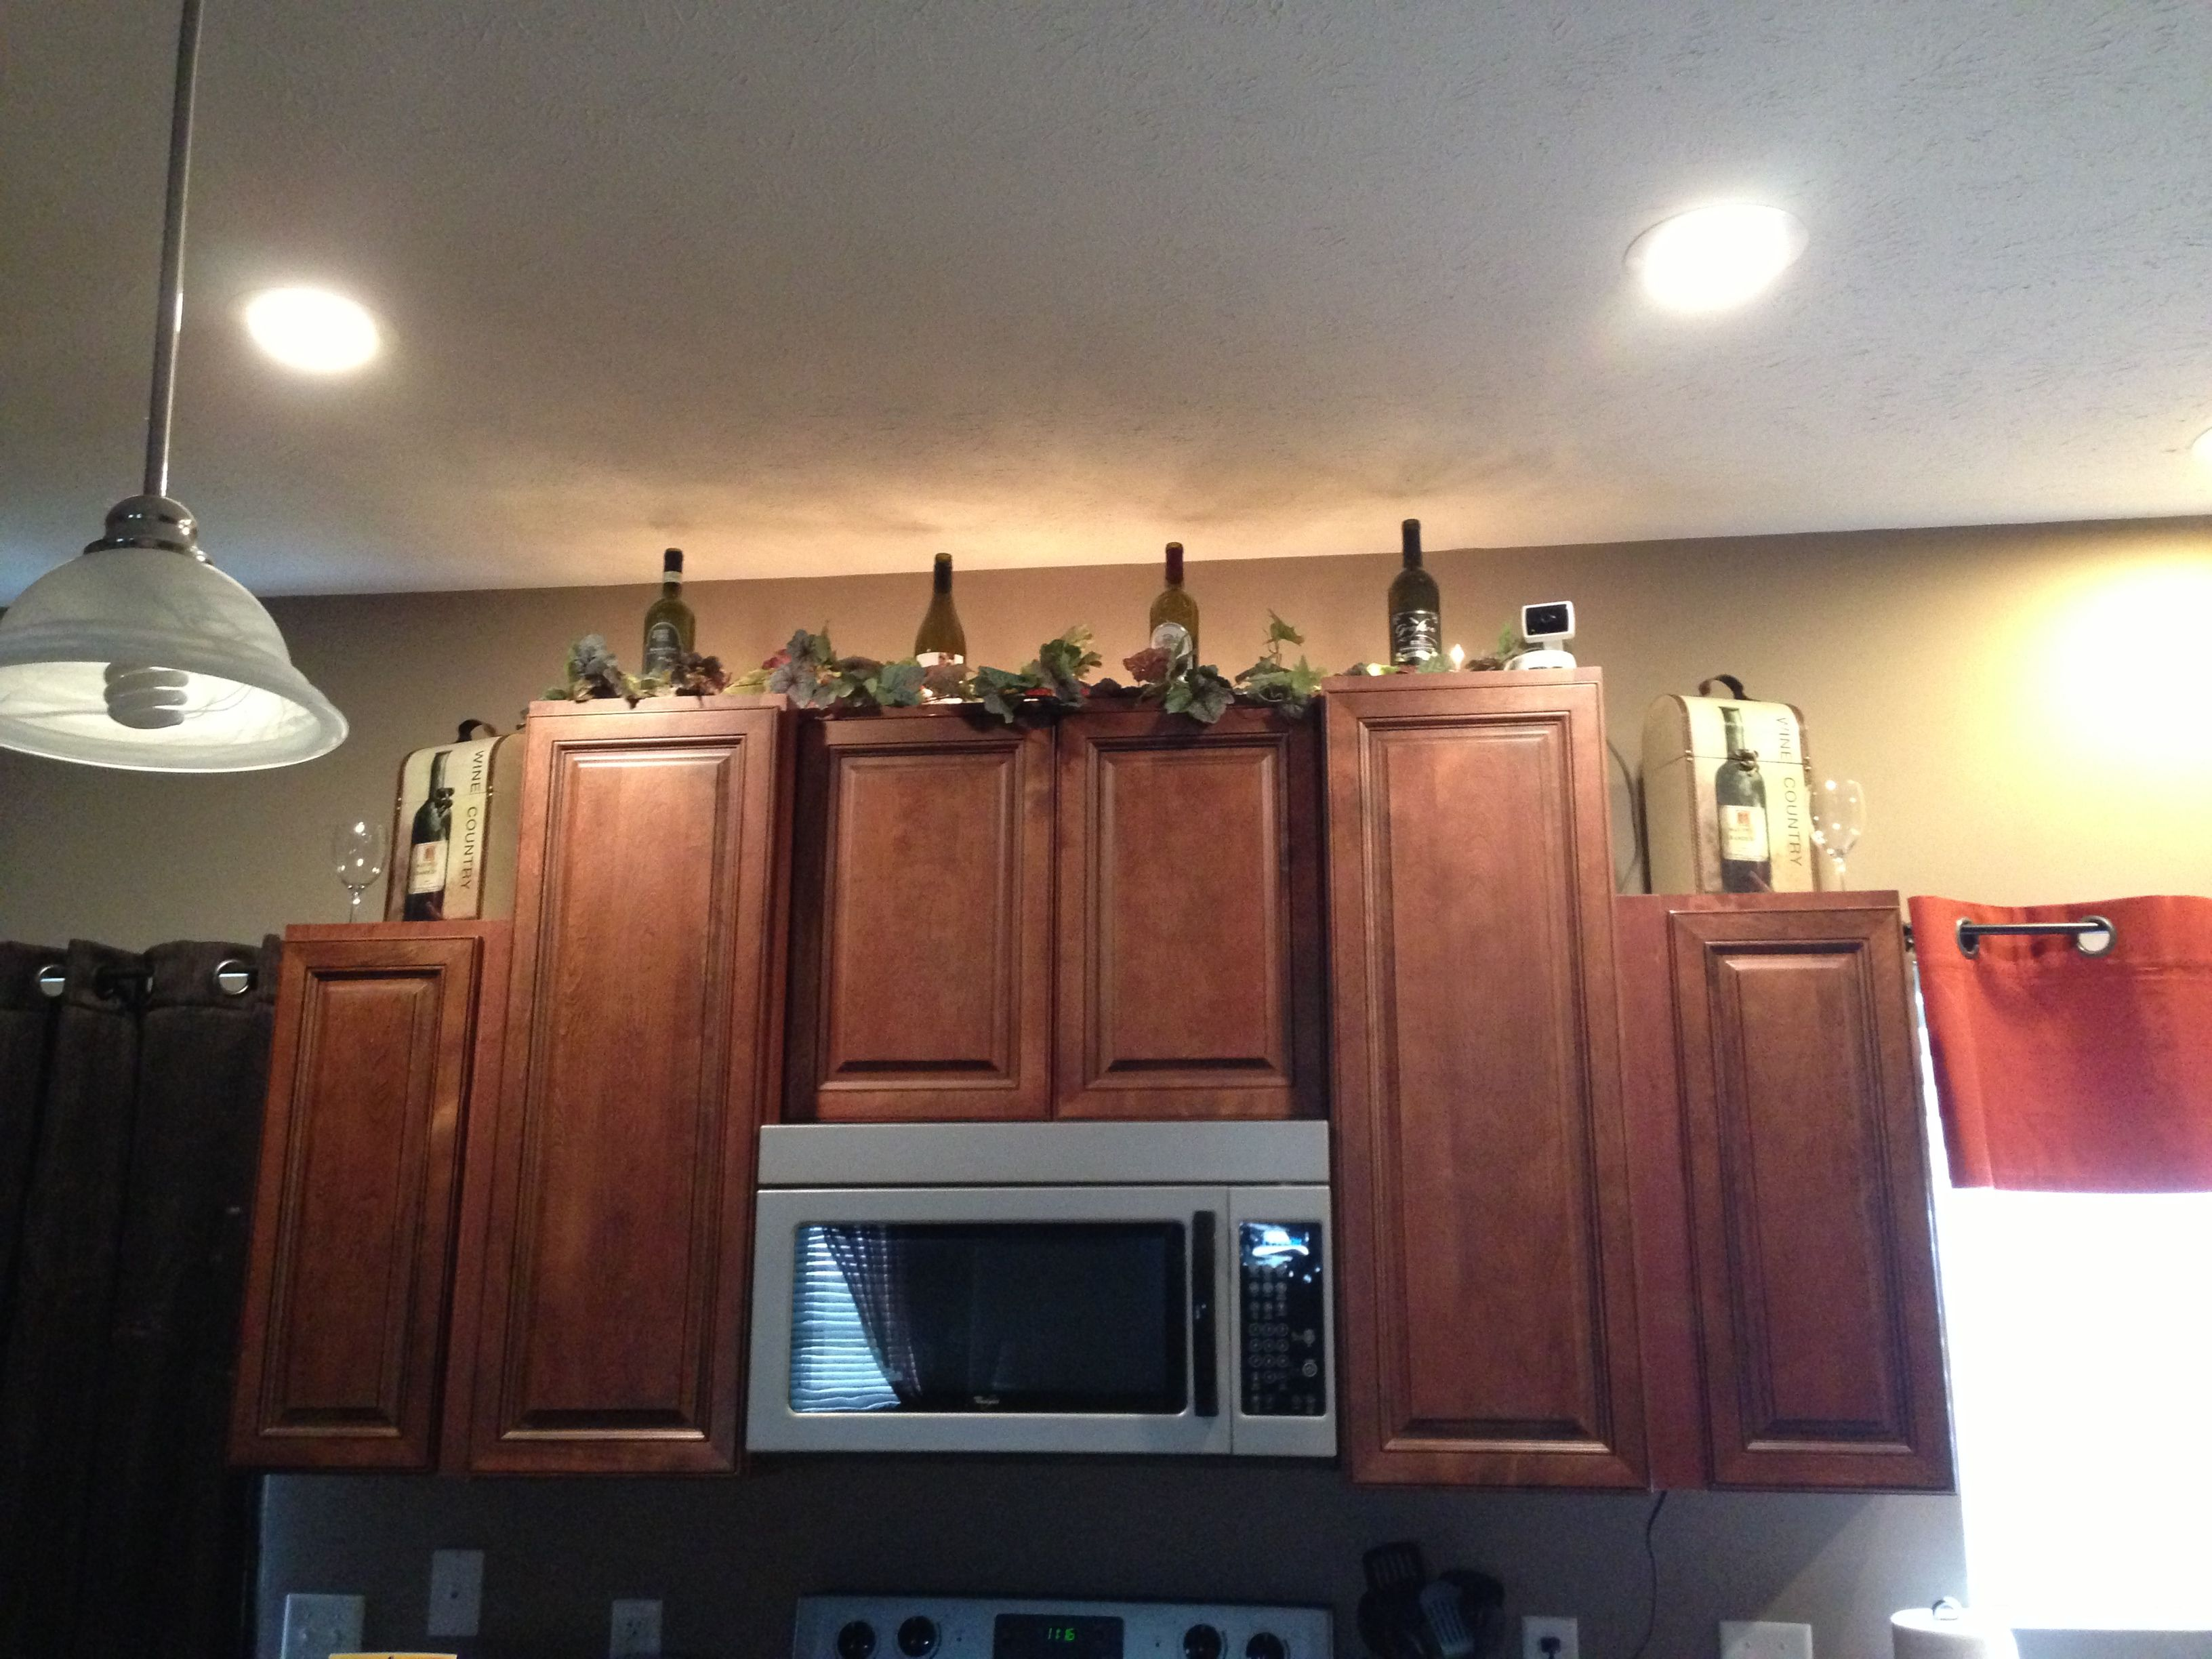 Wine Bottle Kitchen Cabinet Decorations Home Decor Ideas Pinterest Kitchen Cabinet